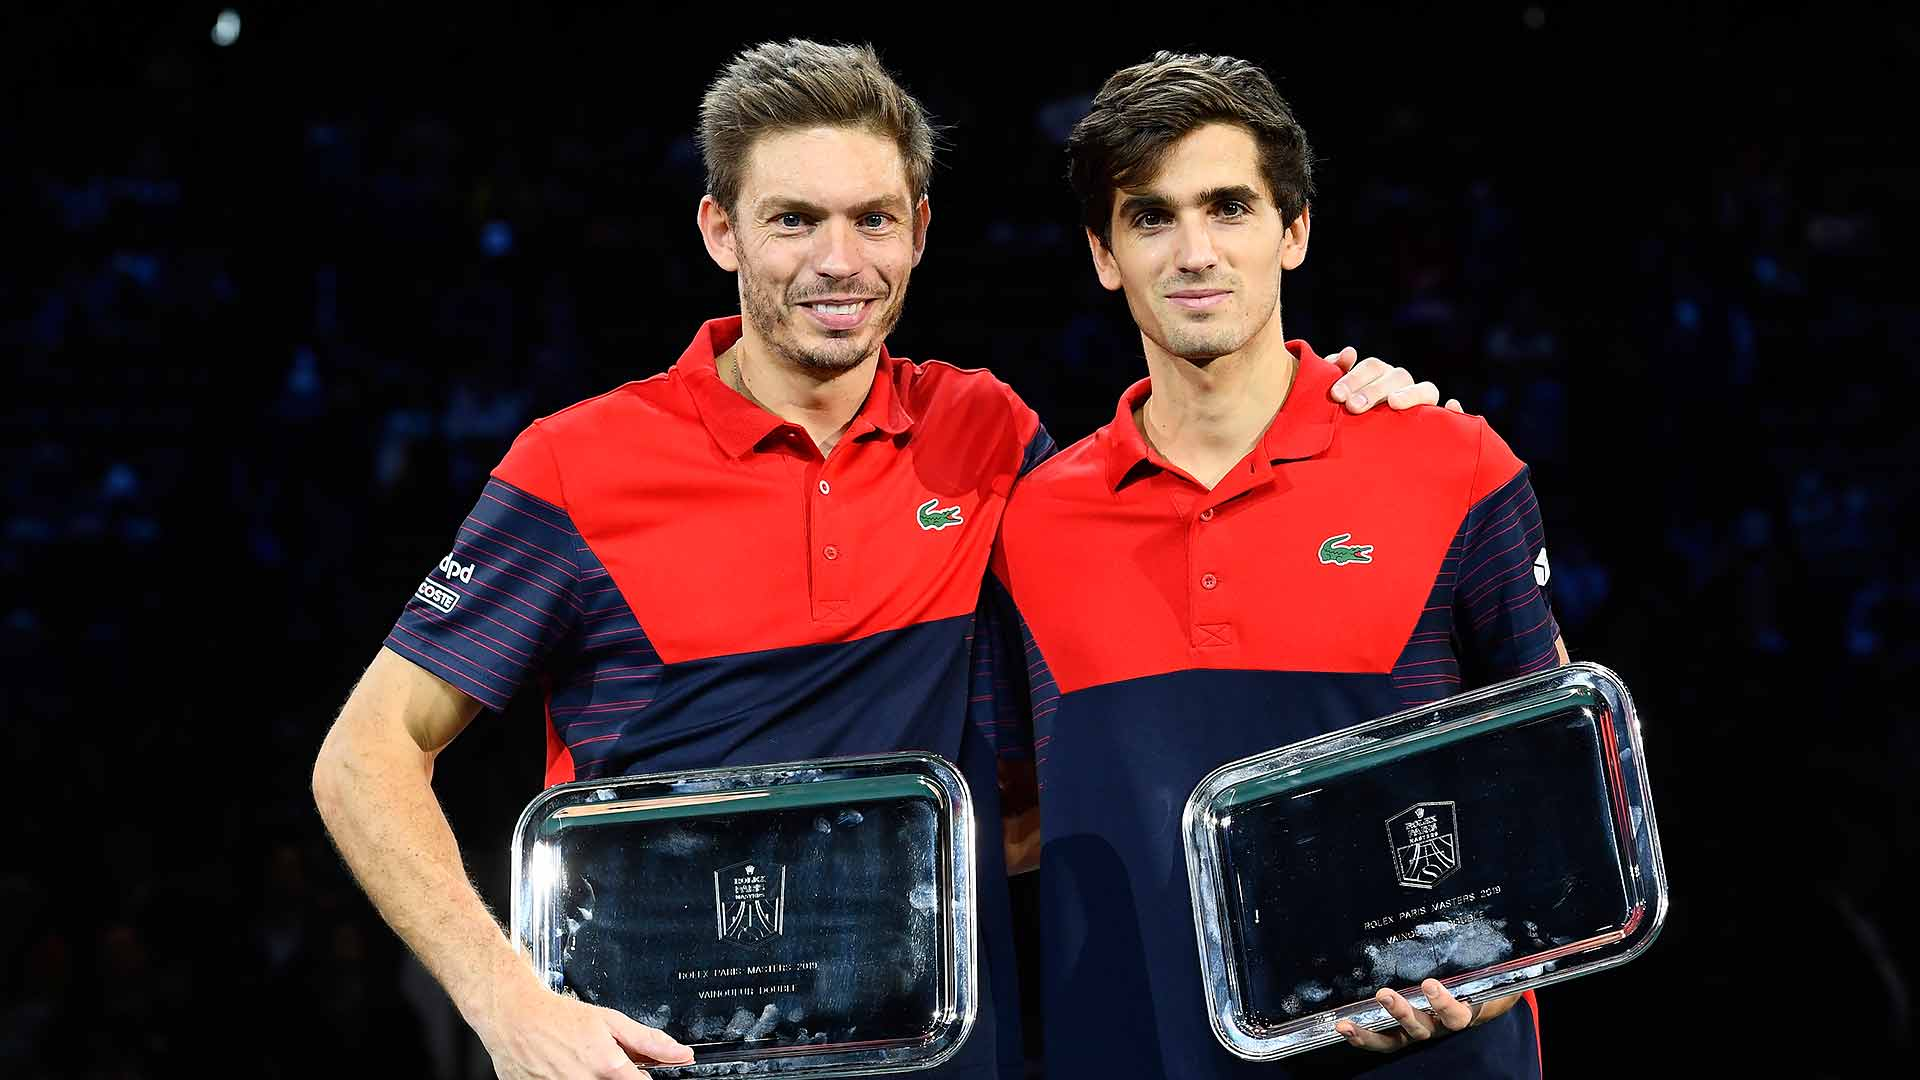 Nicolas Mahut/Pierre-Hugues Herbert win their home ATP Masters 1000 title on Sunday in Paris.